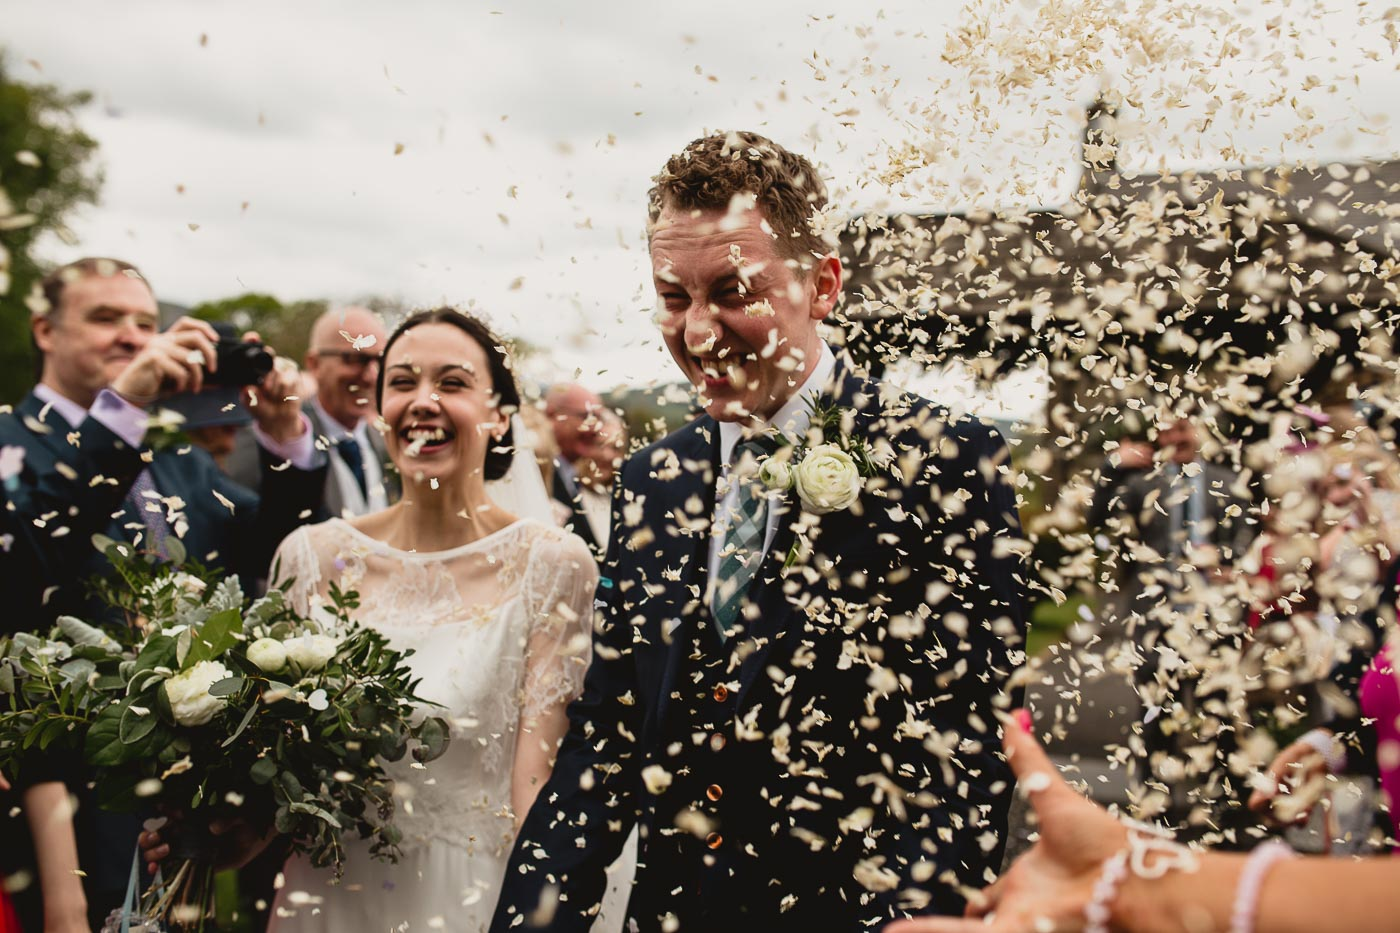 Huge amount of confetti being thrown at the couple just married moments ago, Creative wedding photographer